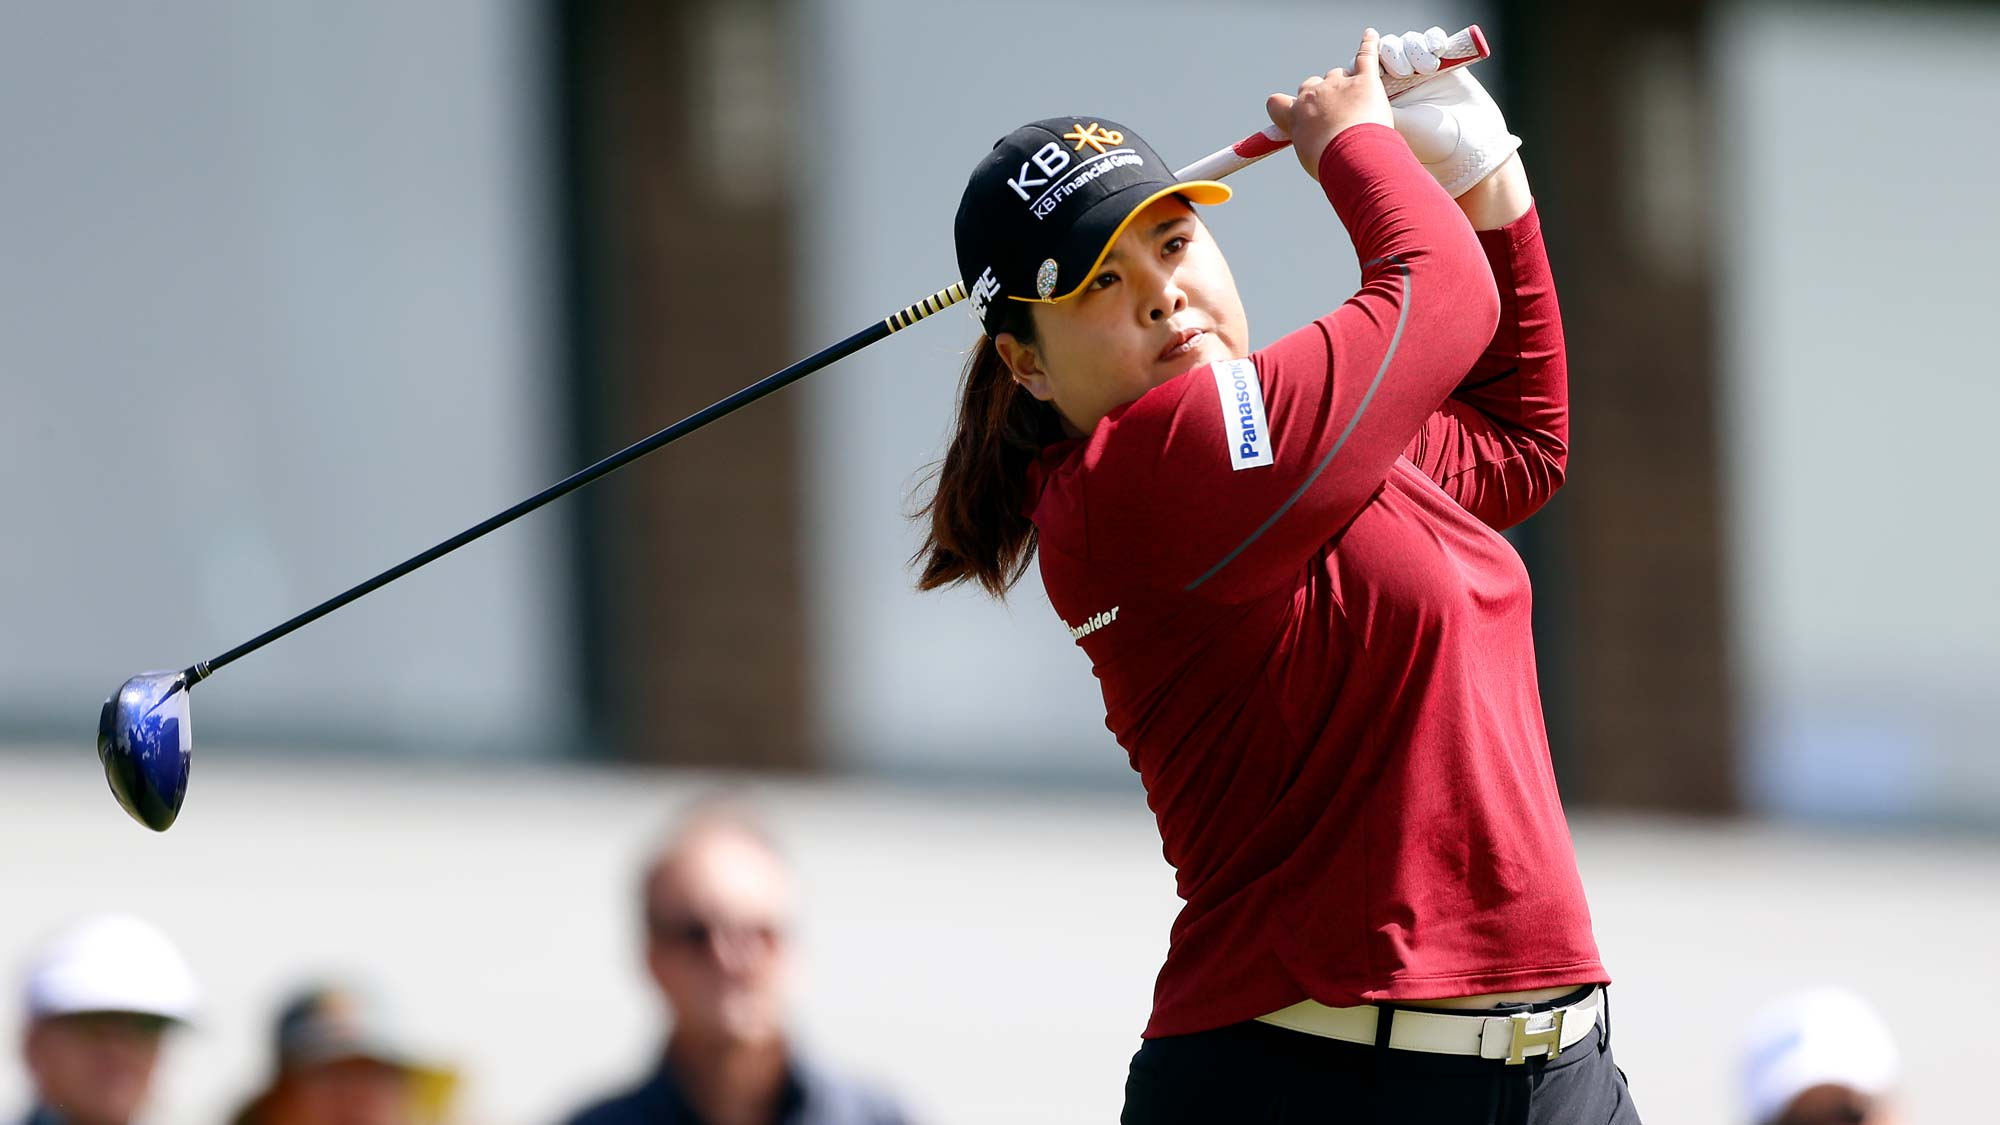 Inbee Park of South Korea hits on the 10th hole during the second round of the LPGA Mediheal Championship